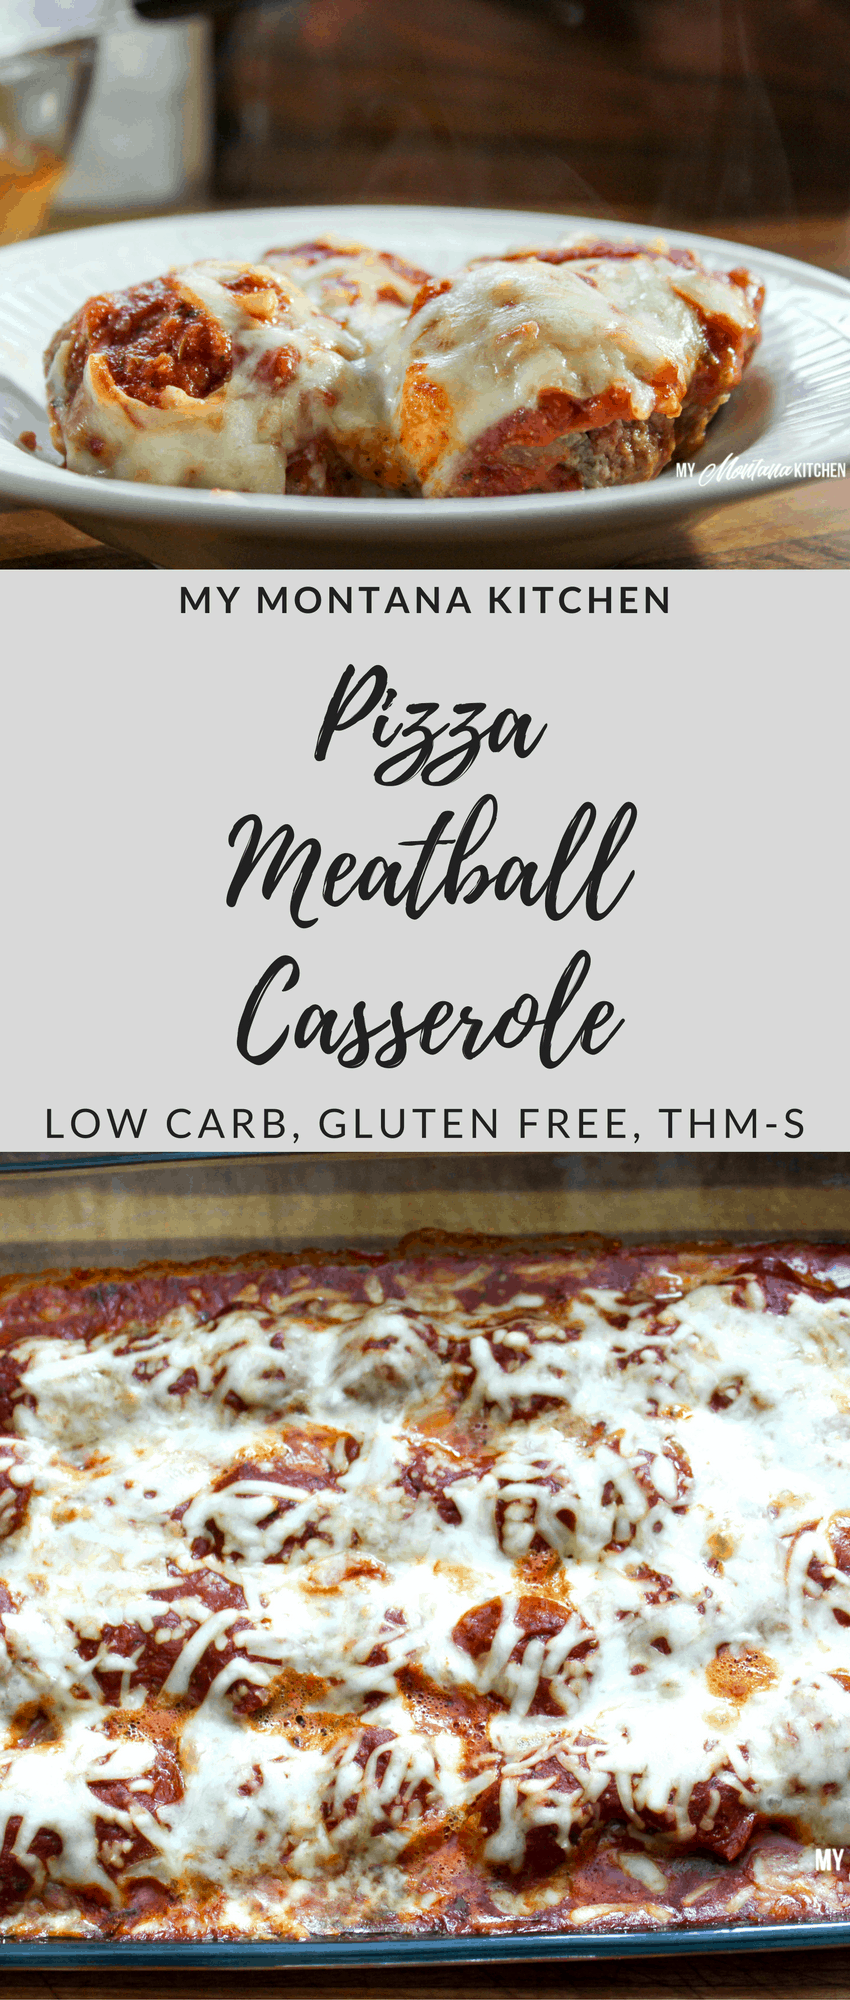 Low Carb Pizza Meatball Casserole #trimhealthymama #thm #thms #pizza #meatballs #casserole #mymontanakitchen